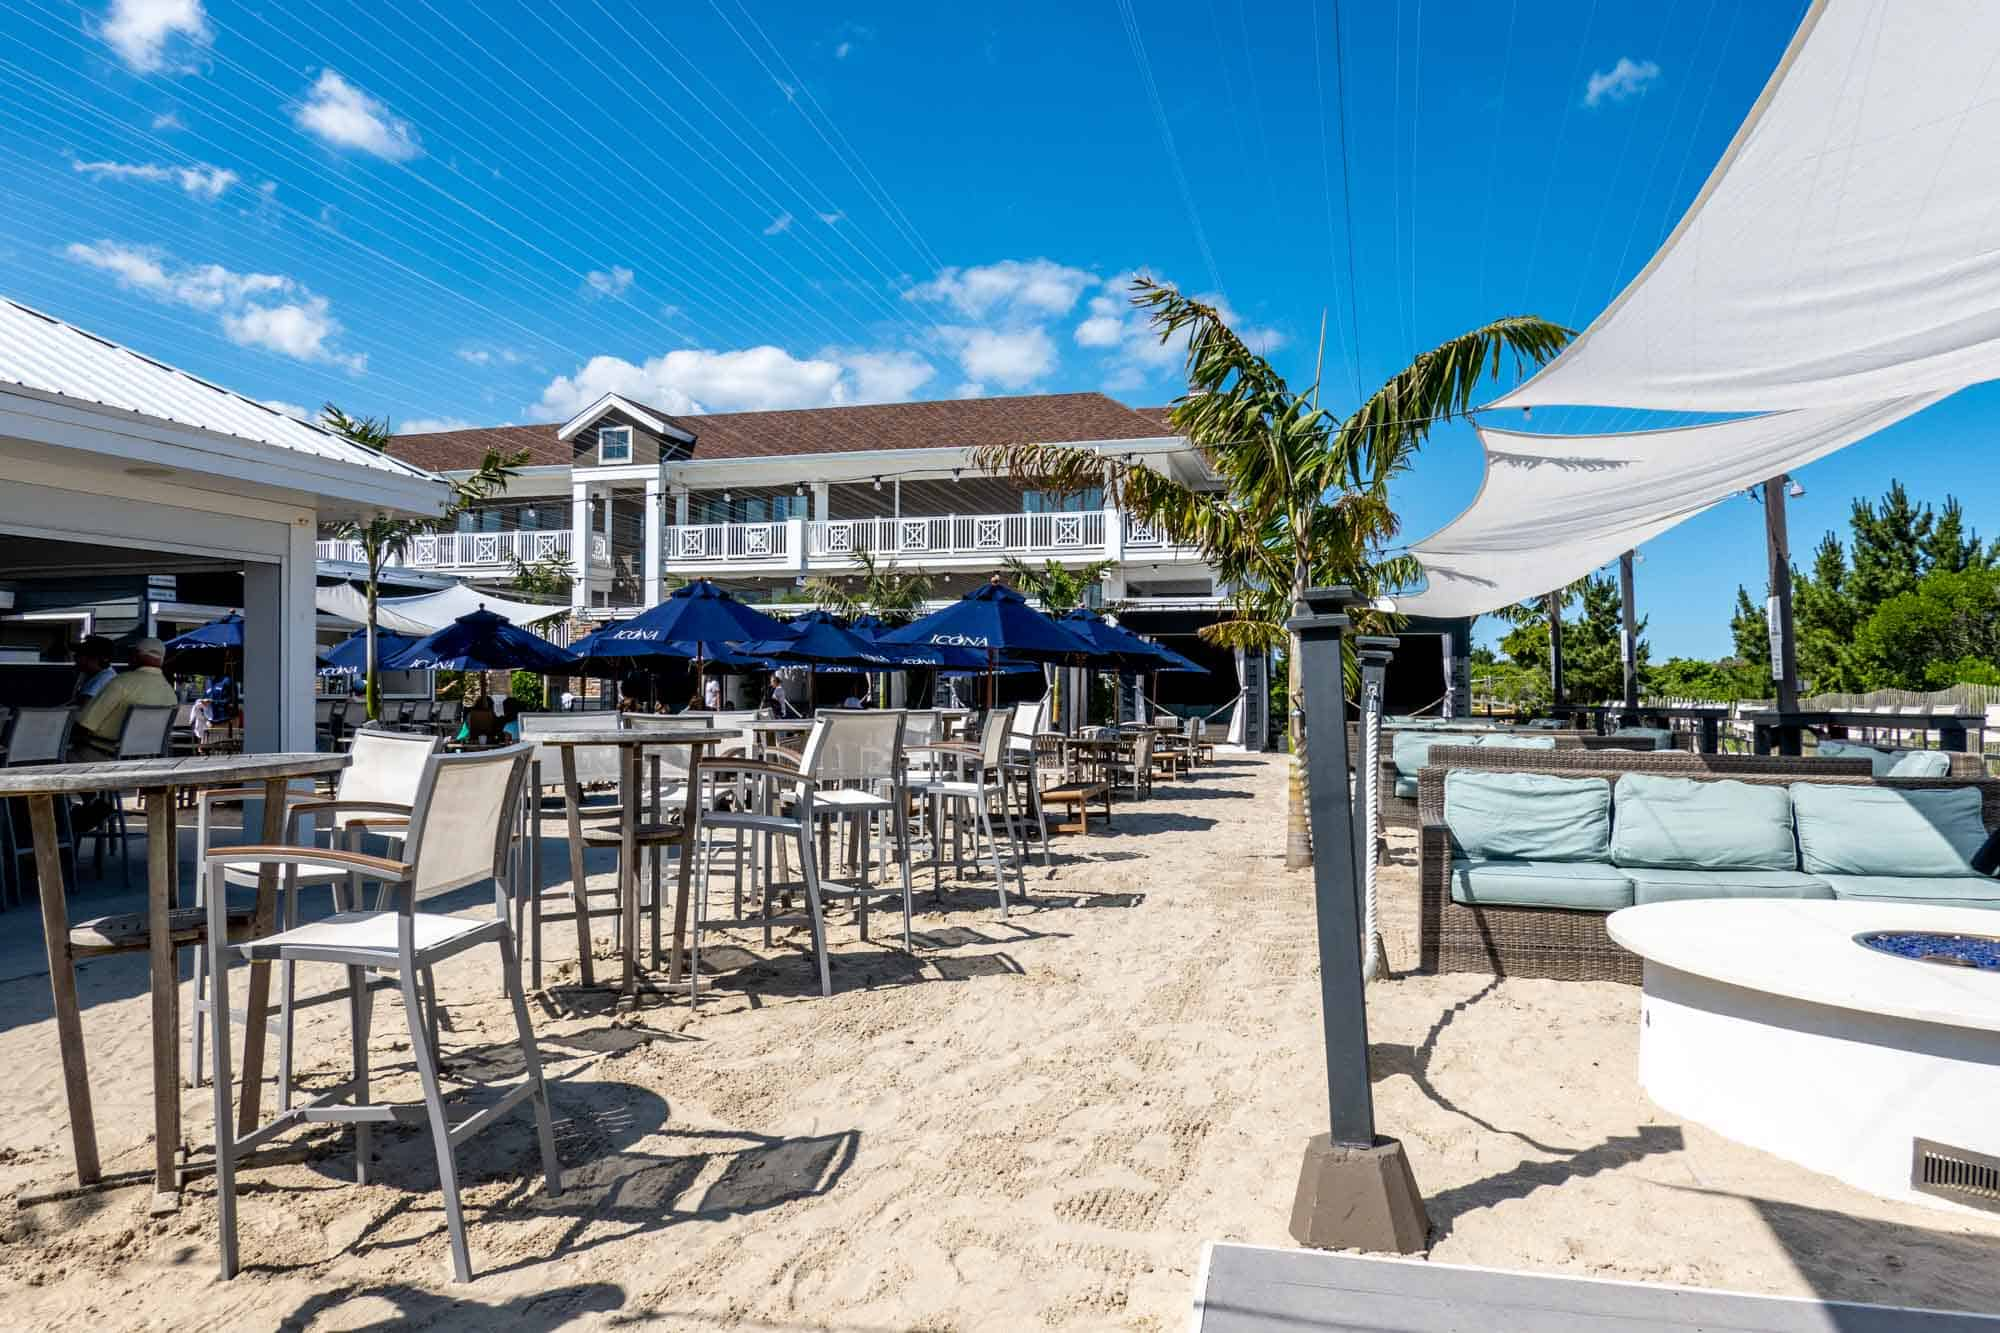 Couches, fire pits and tables at a beach bar